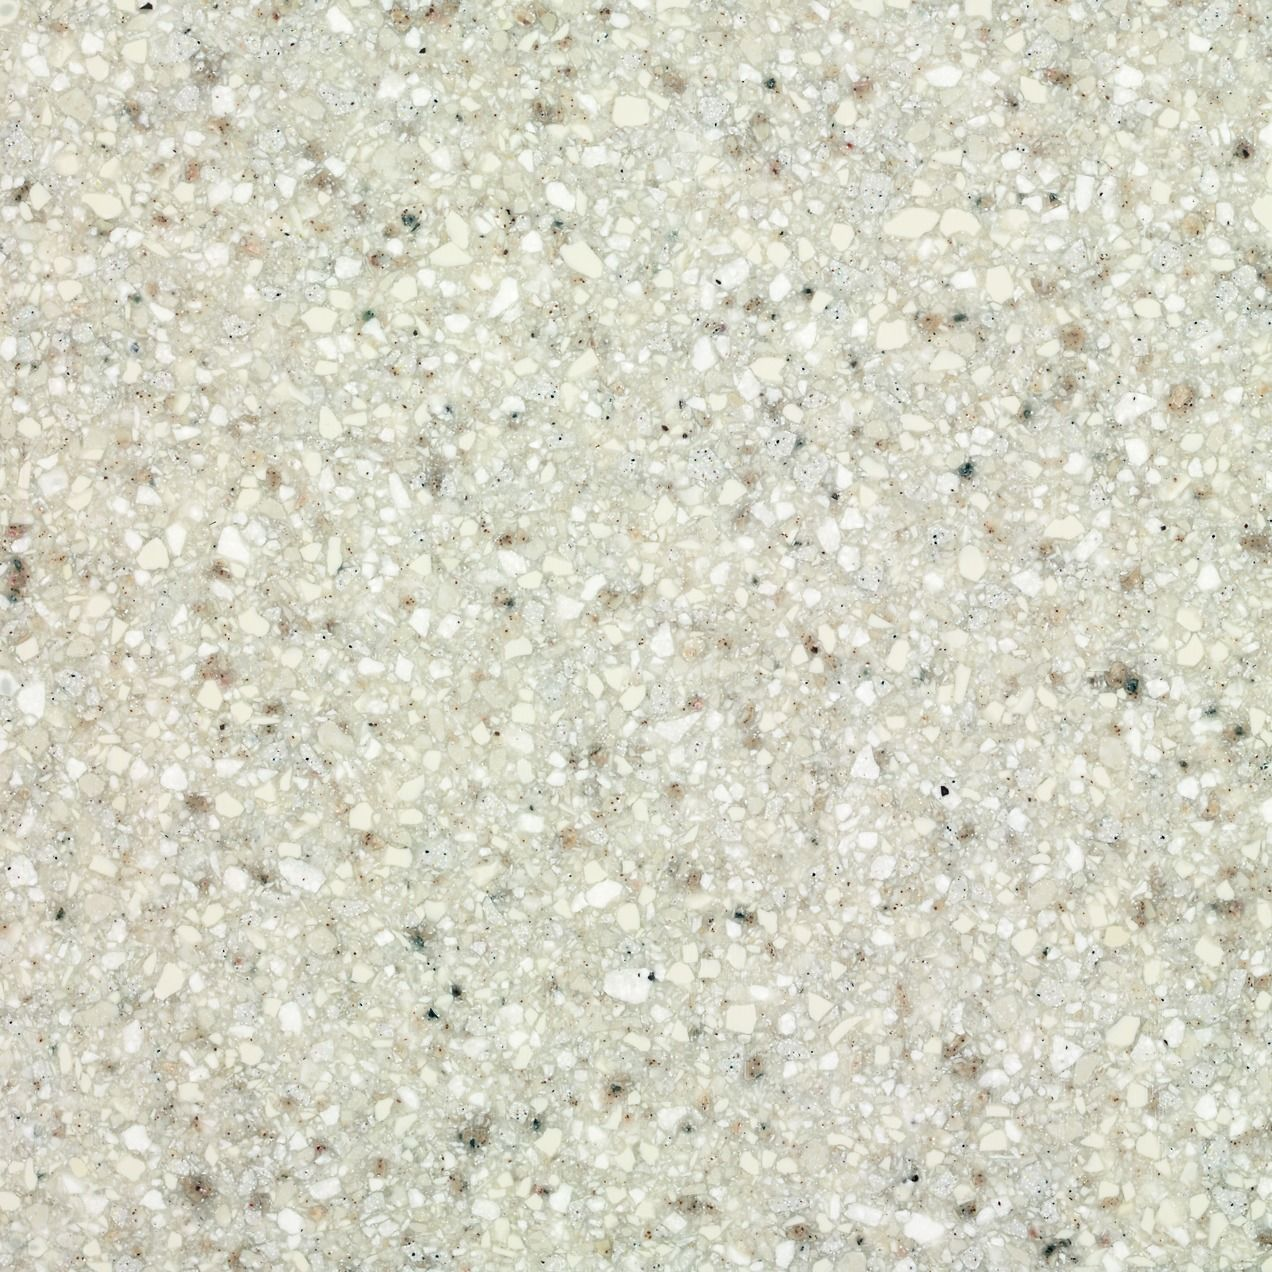 Granite kitchen tops colours - White Sands Kitchen And Bathroom Countertop Color Capitol Granite